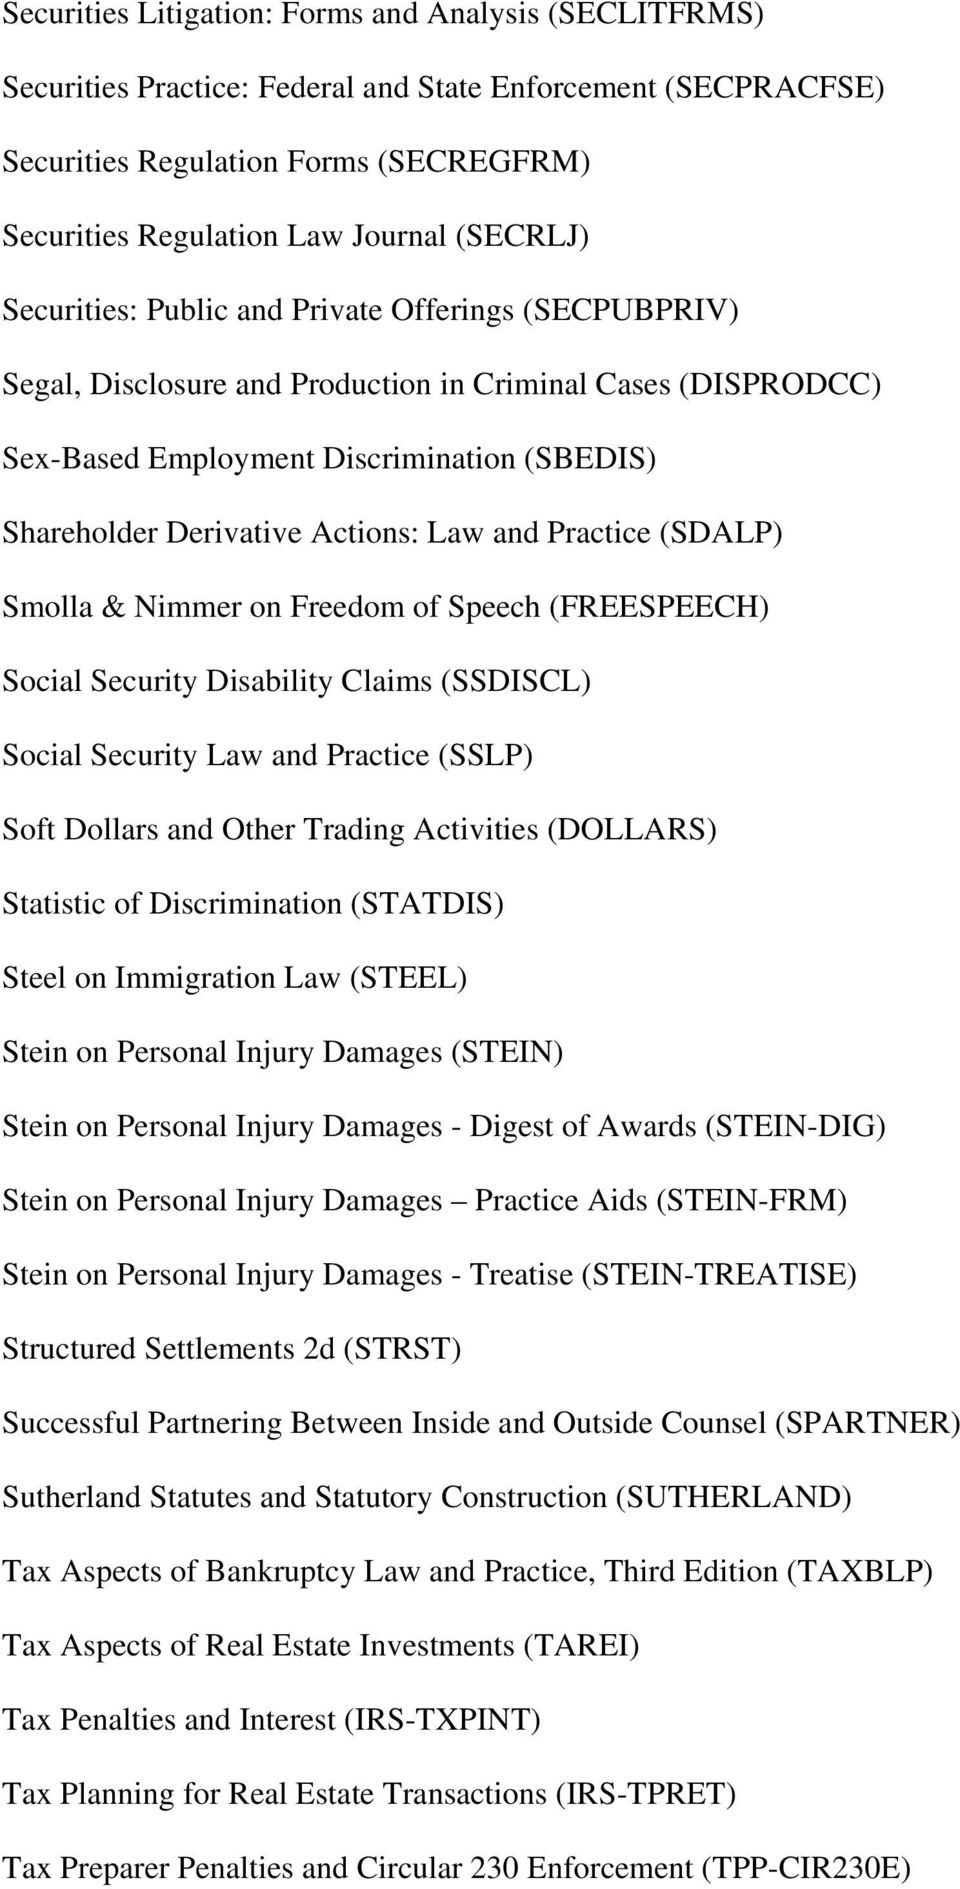 Actions: Law and Practice (SDALP) Smolla & Nimmer on Freedom of Speech (FREESPEECH) Social Security Disability Claims (SSDISCL) Social Security Law and Practice (SSLP) Soft Dollars and Other Trading